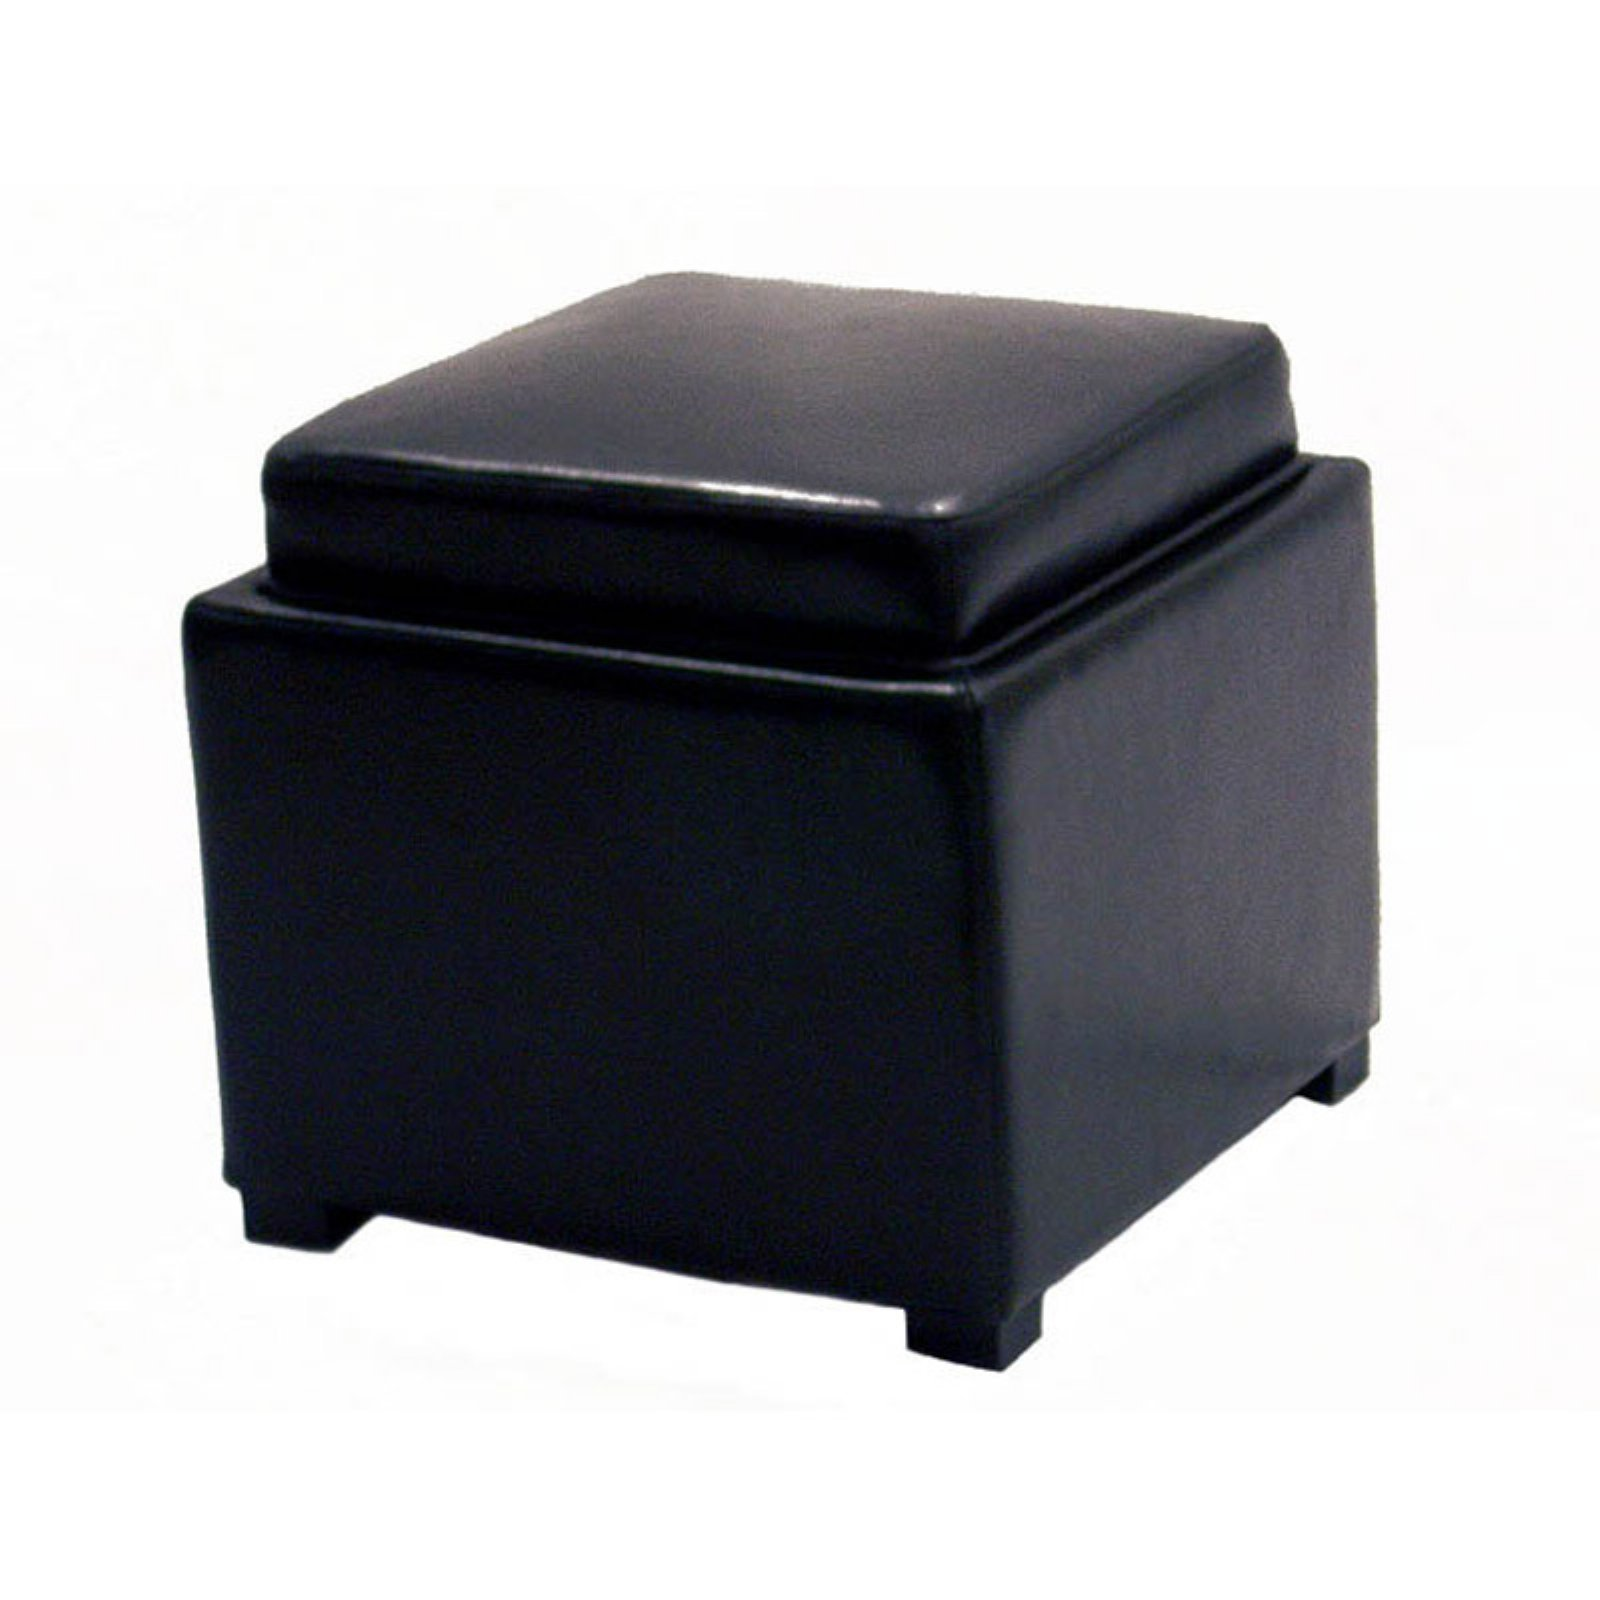 Baxton Studio Full Leather Square Storage Ottoman With